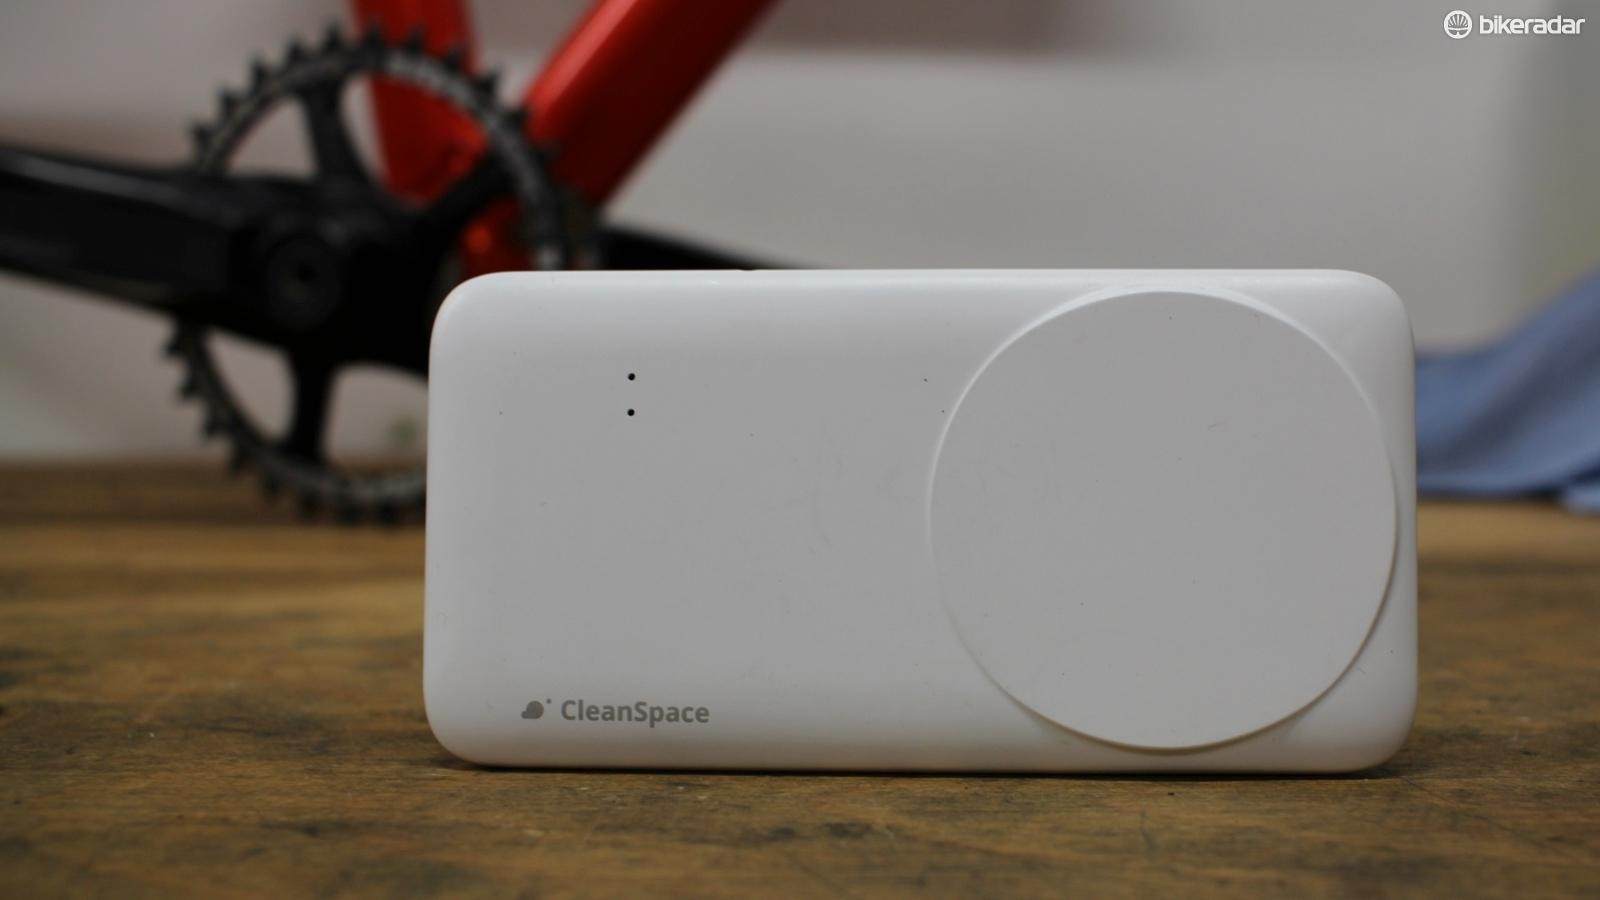 How much air pollution are you breathing in? Find out with the CleanSpace sensor